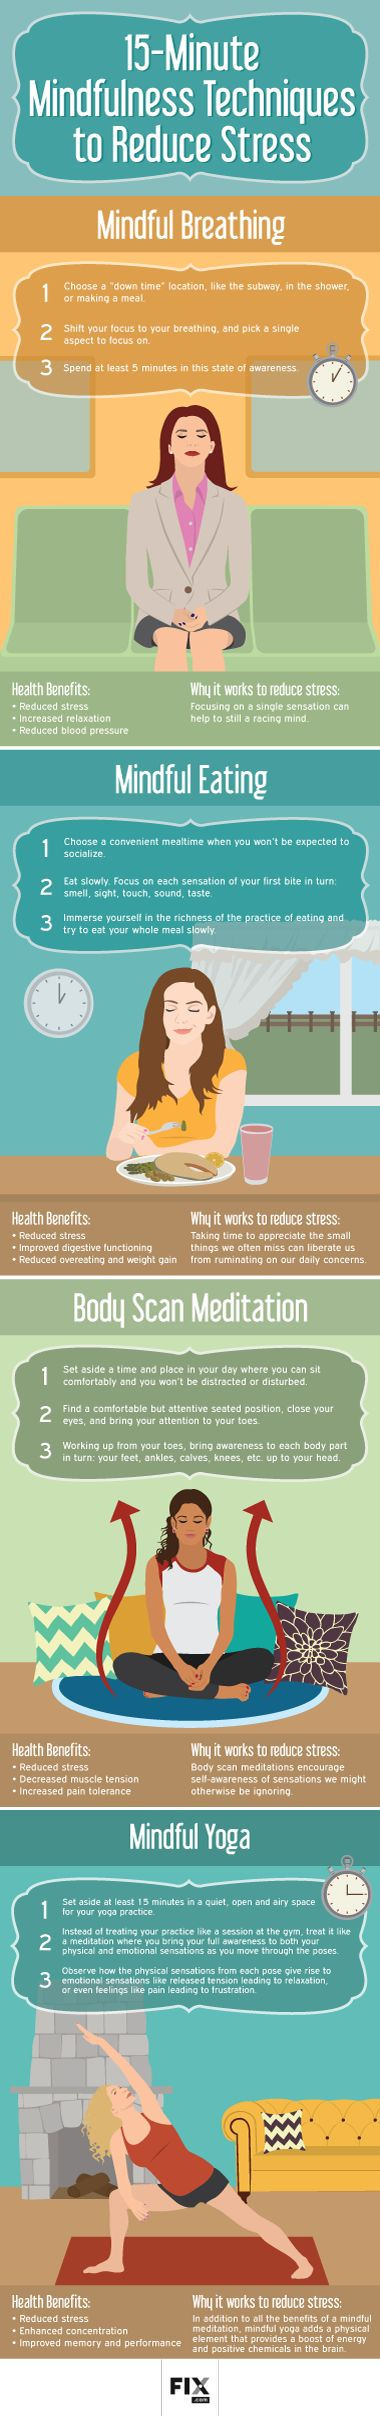 Taking a few moments every day to reflect can reduce stress and increase quality of life! Here are 5 mindfulness tips to reduce the toll being constantly on-the-go takes on our bodies and minds!